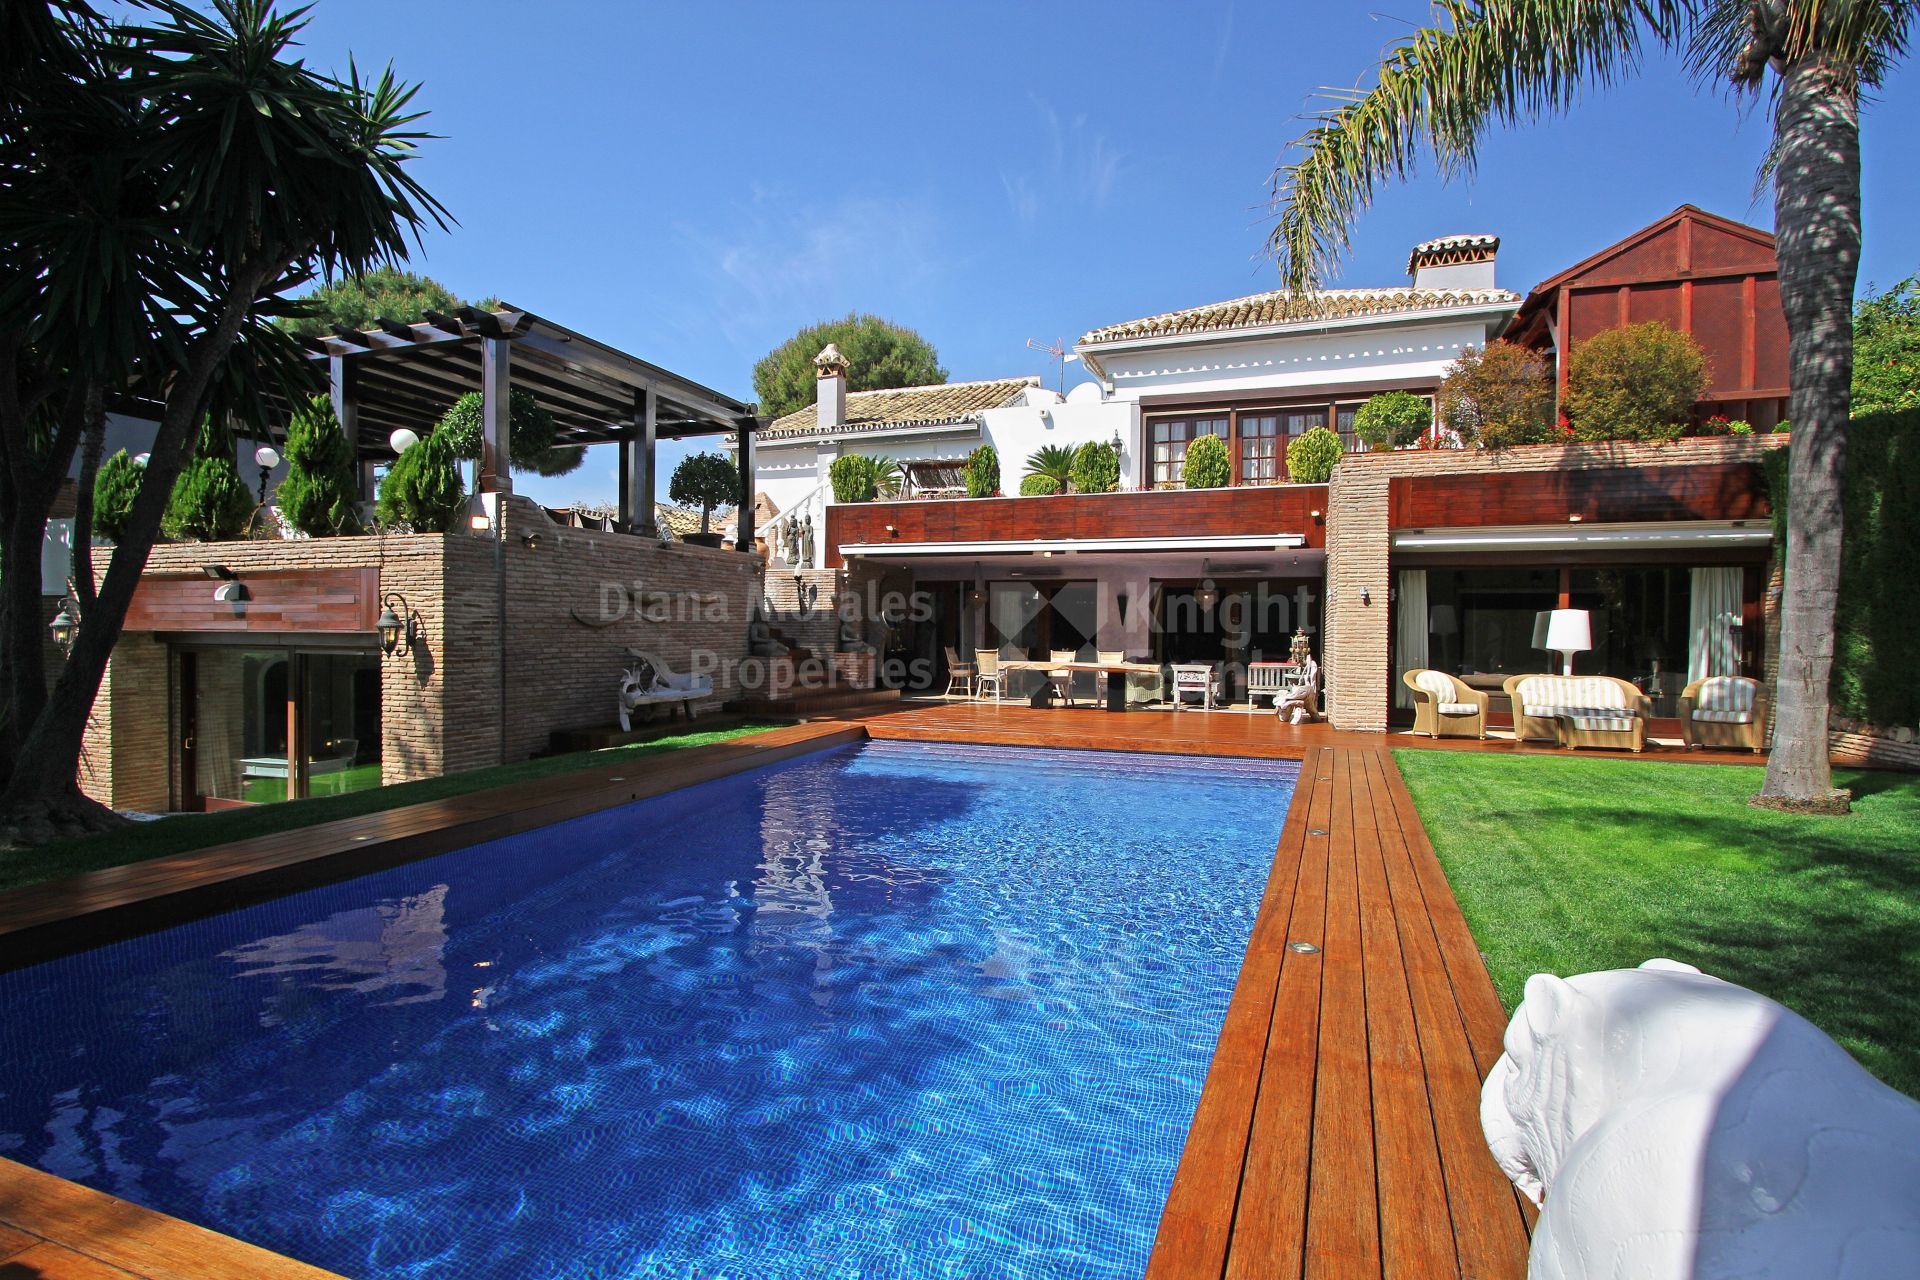 Eight bedroom villa in sought after area villa for sale - Iproperty marbella ...